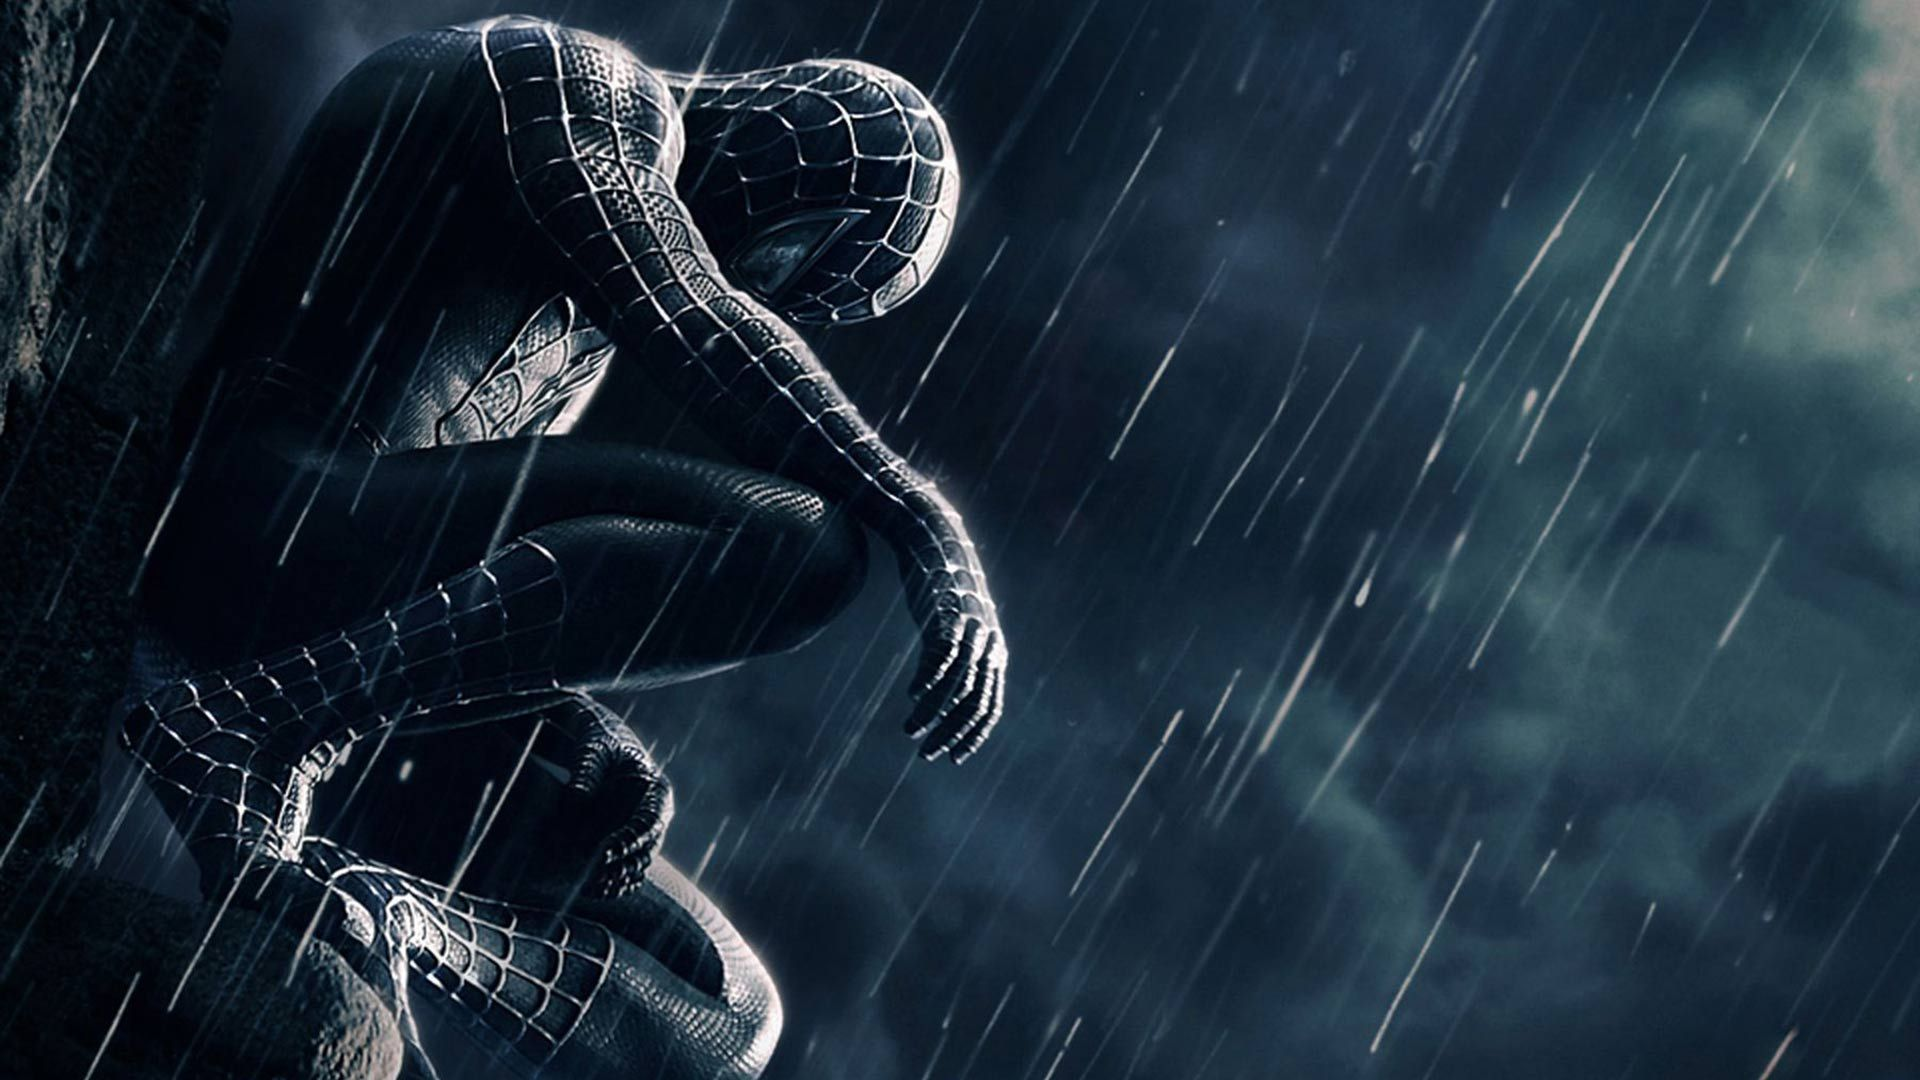 Spider Man 3 Movie Wallpaper Spiderman Pictures Rain Wallpapers Amazing Spiderman Movie